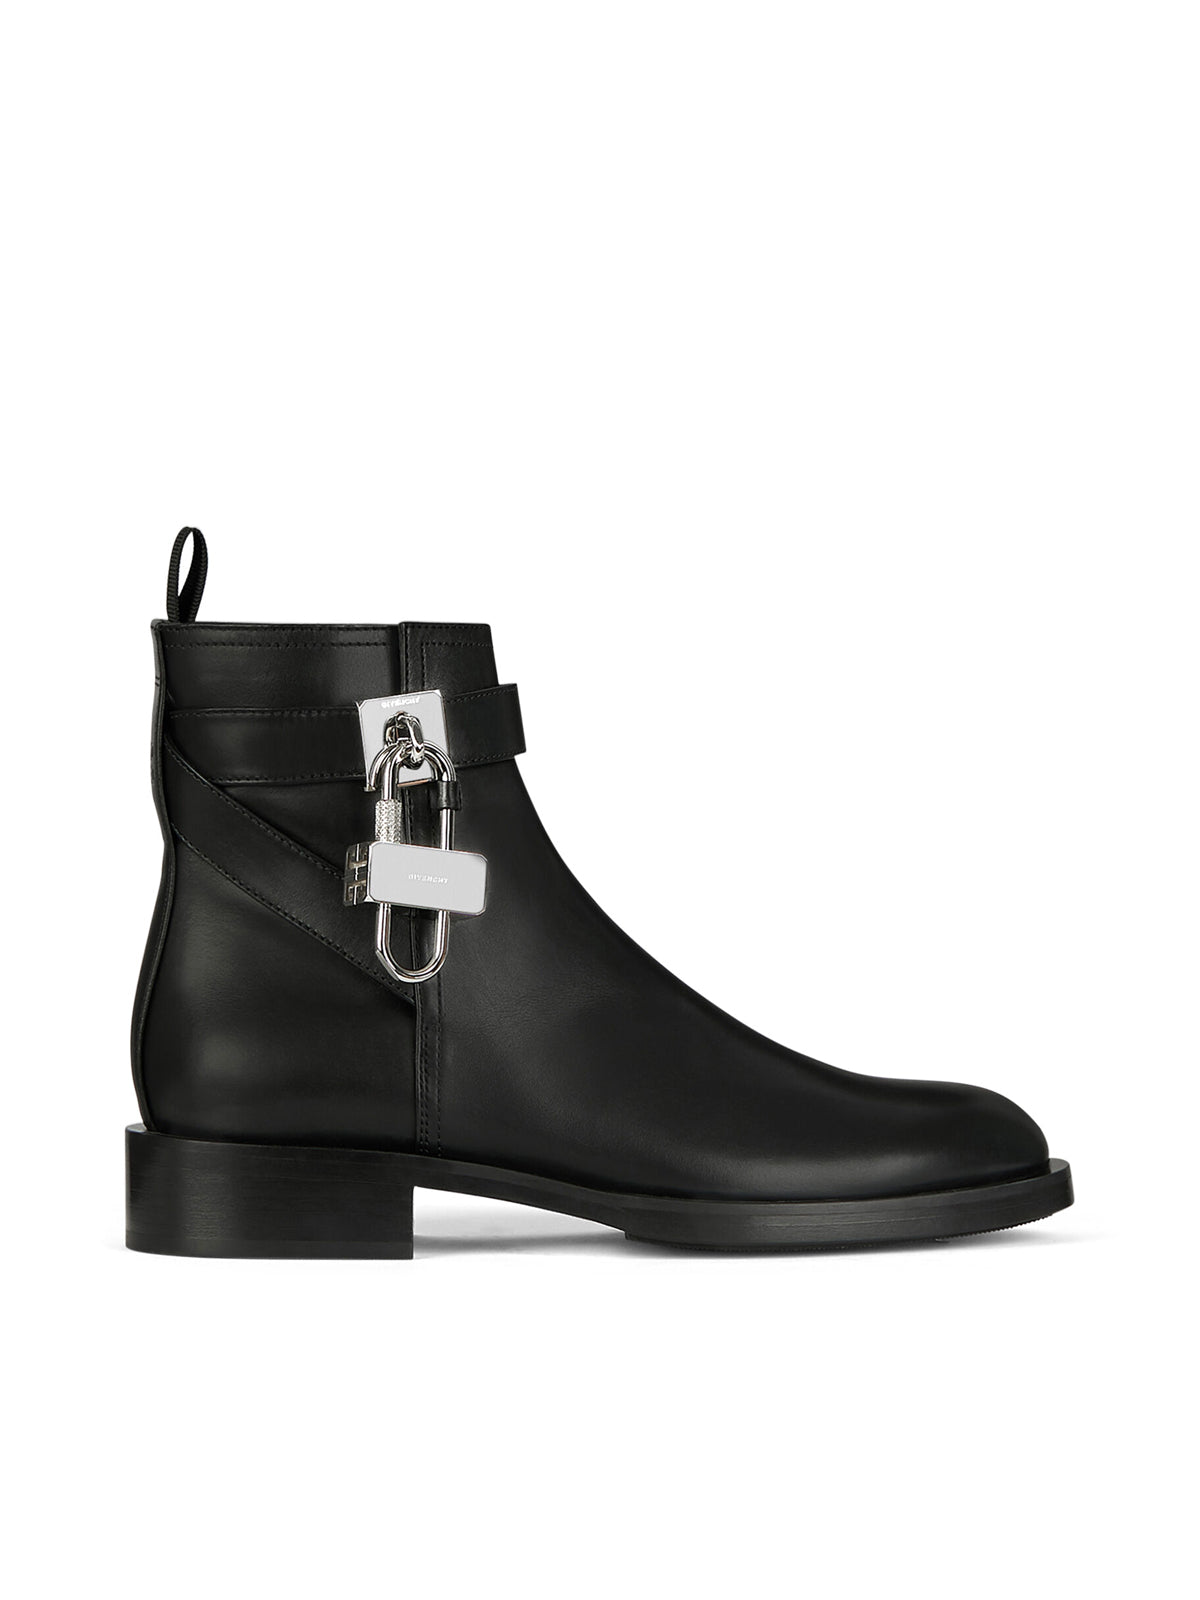 LOCK ANKLE BOOTS